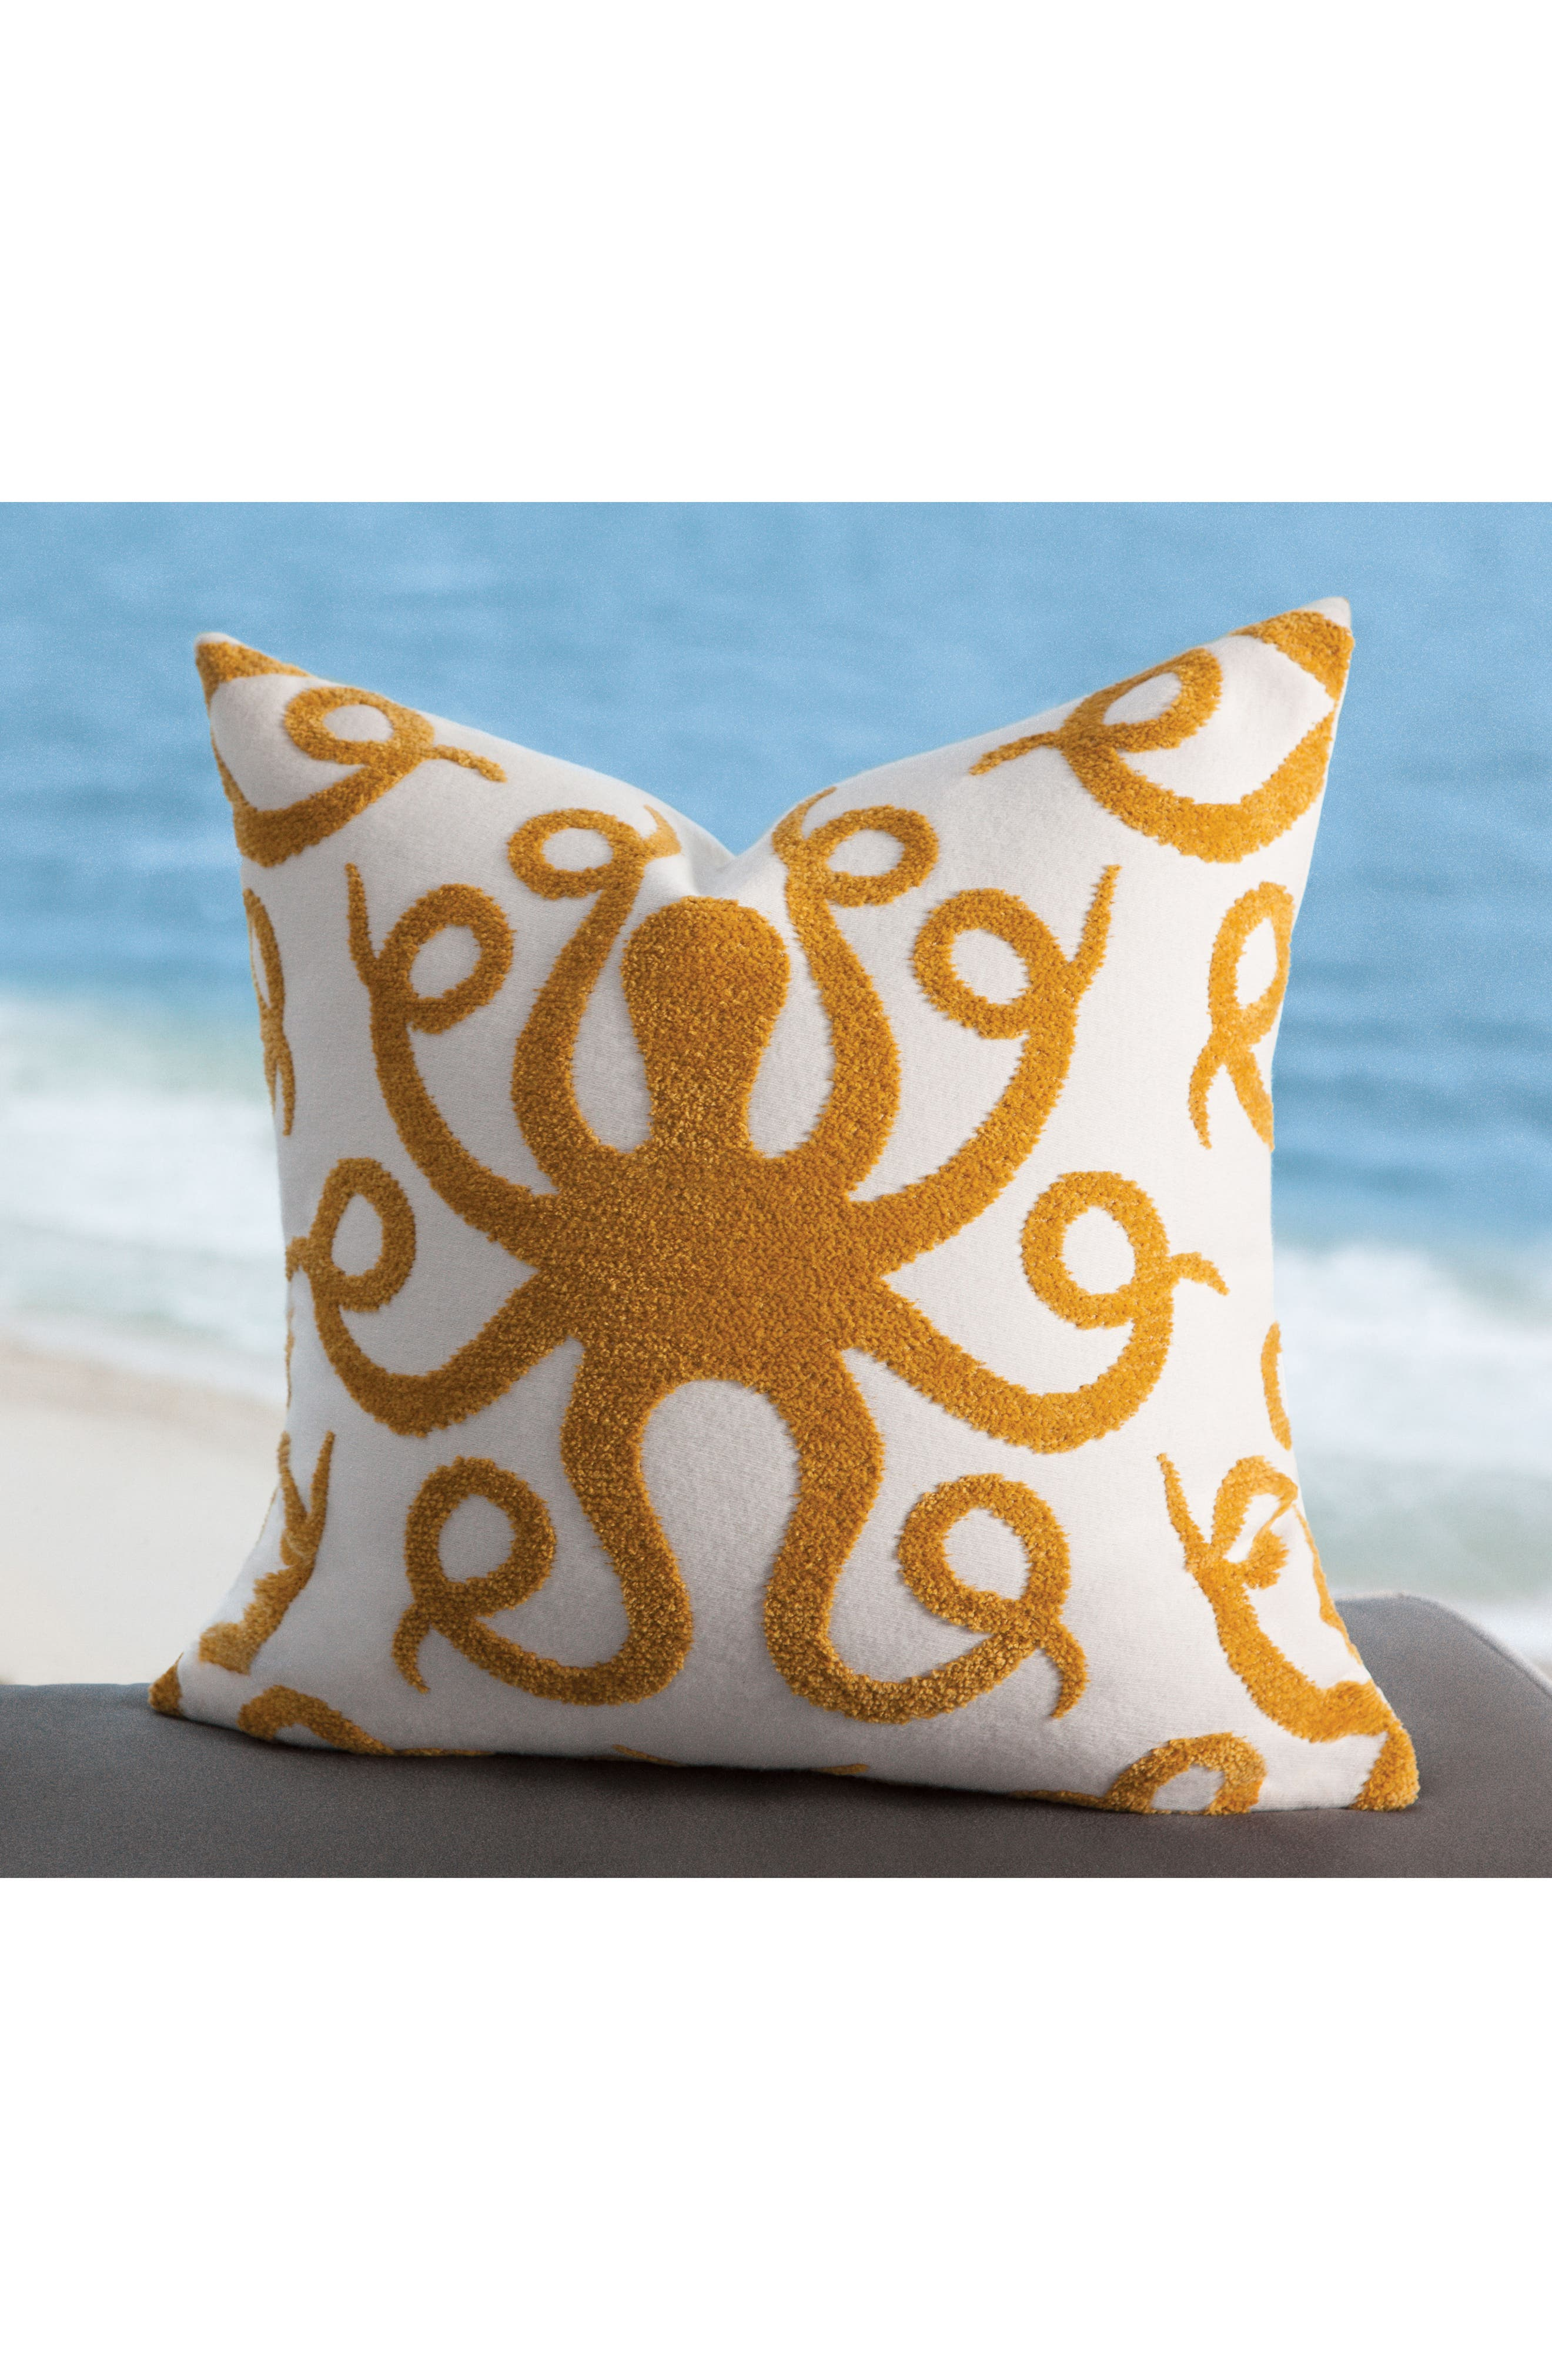 Octoplush Indoor/Outdoor Accent Pillow,                             Alternate thumbnail 2, color,                             Gold/ White